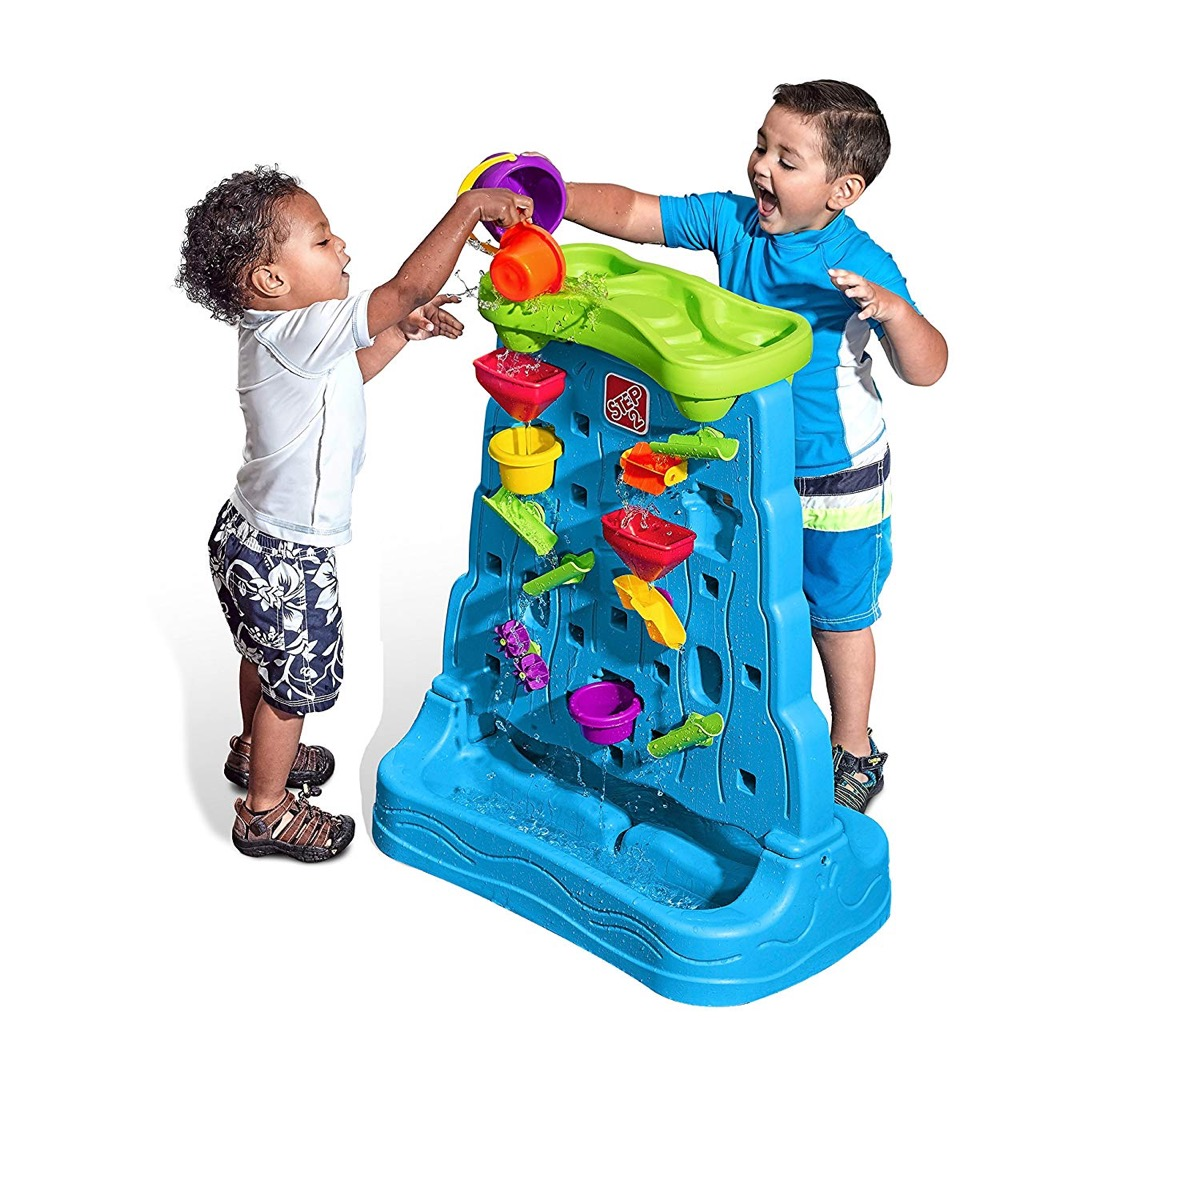 two children playing with a waterfall toy, best outdoor toys for toddlers